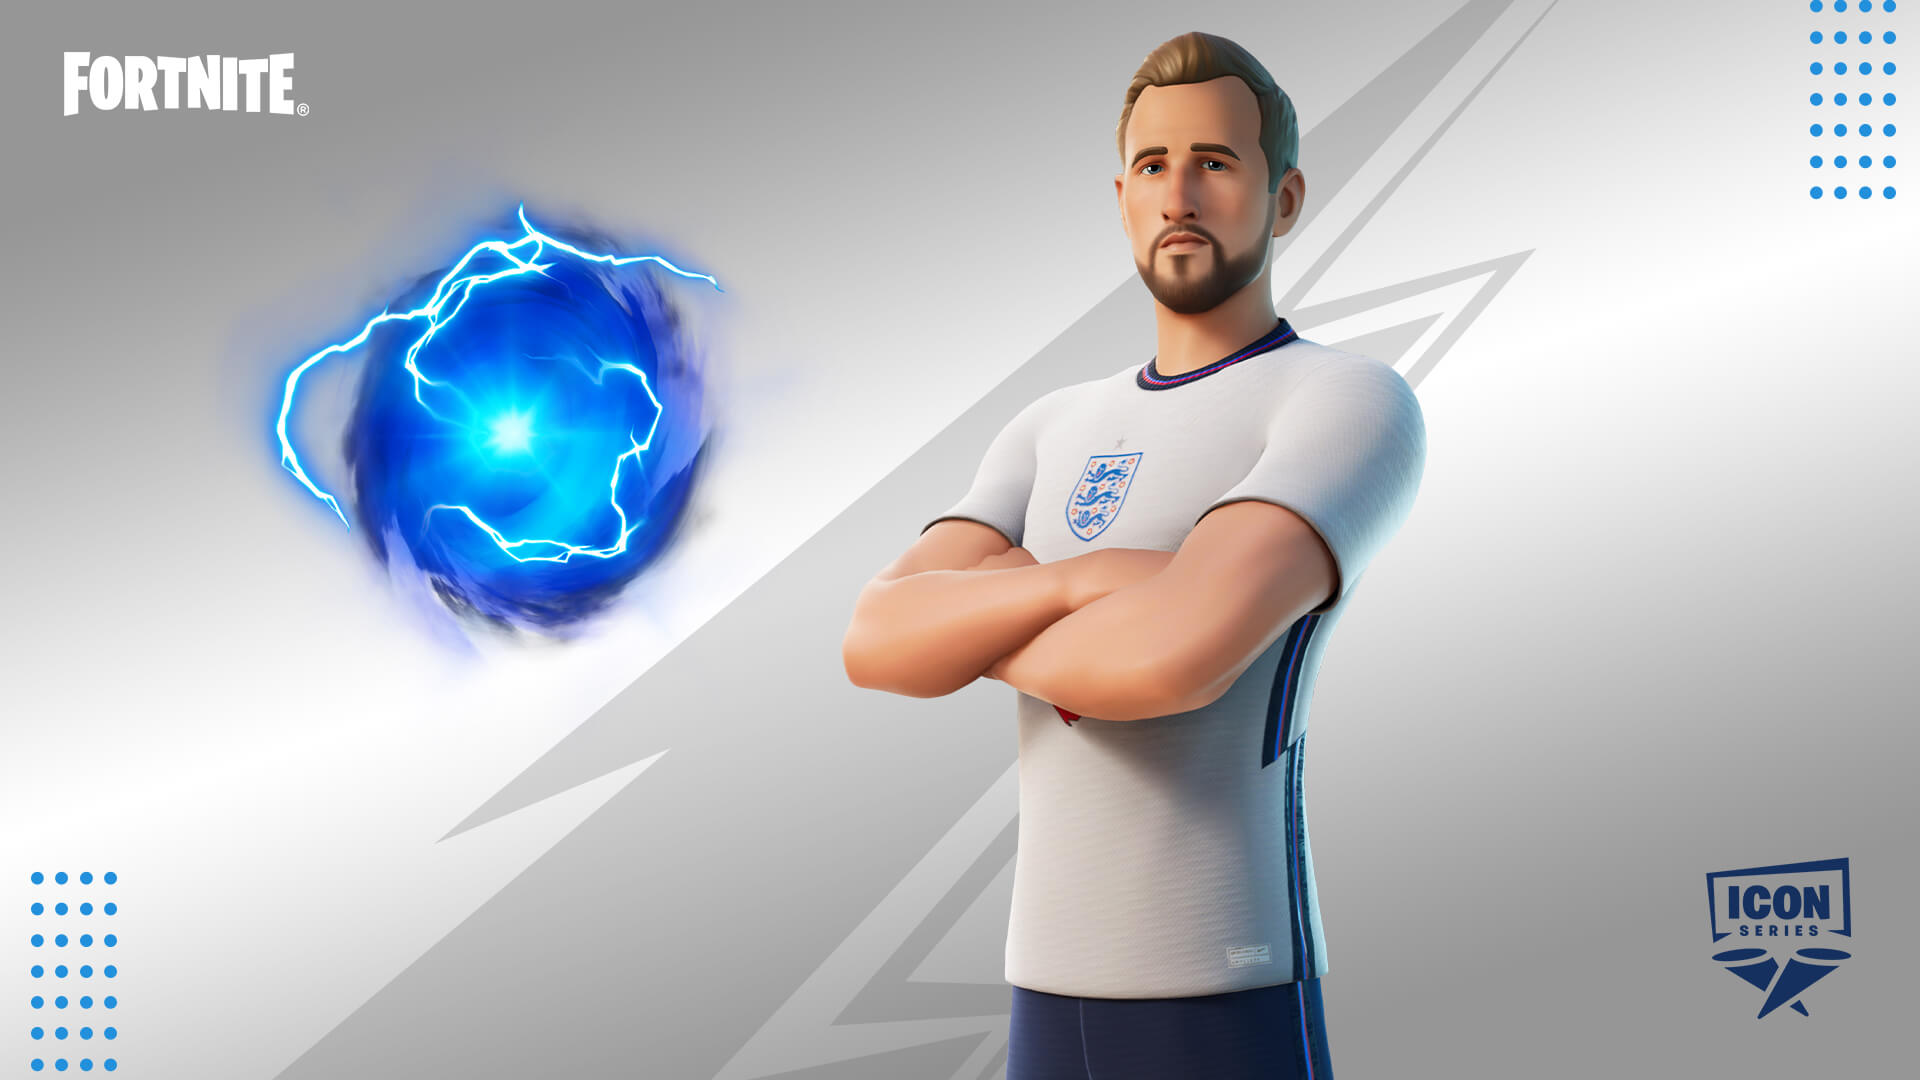 Fortnite Harry Kane Outfit Hurrikane Emote And Back Bling